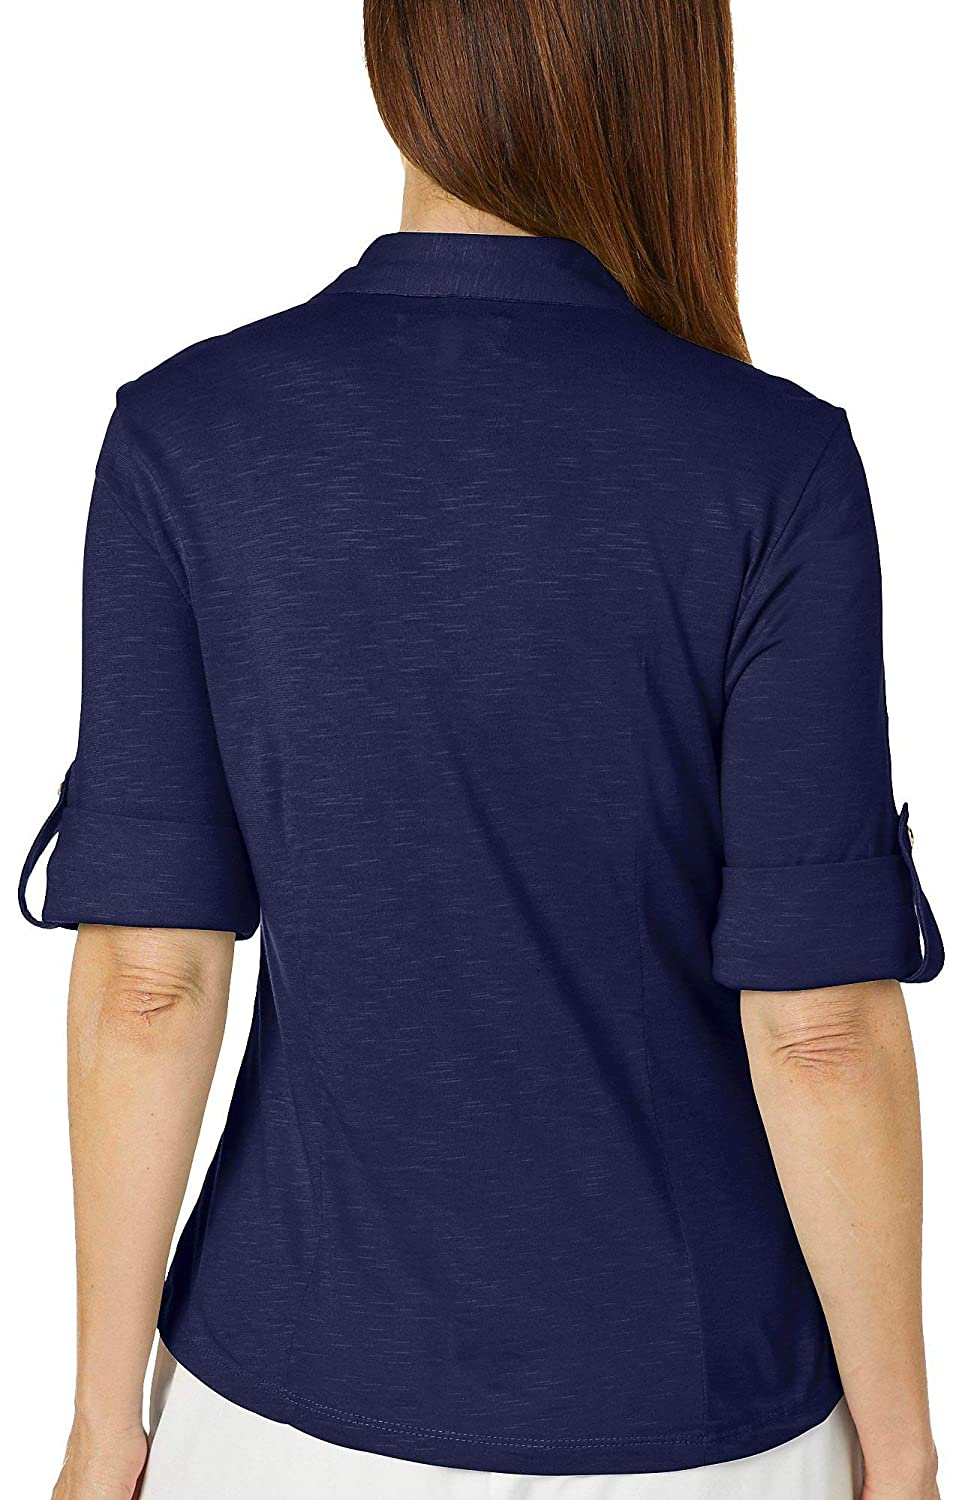 Coral Bay Petite Solid Button Placket Roll Tab Sleeve Top